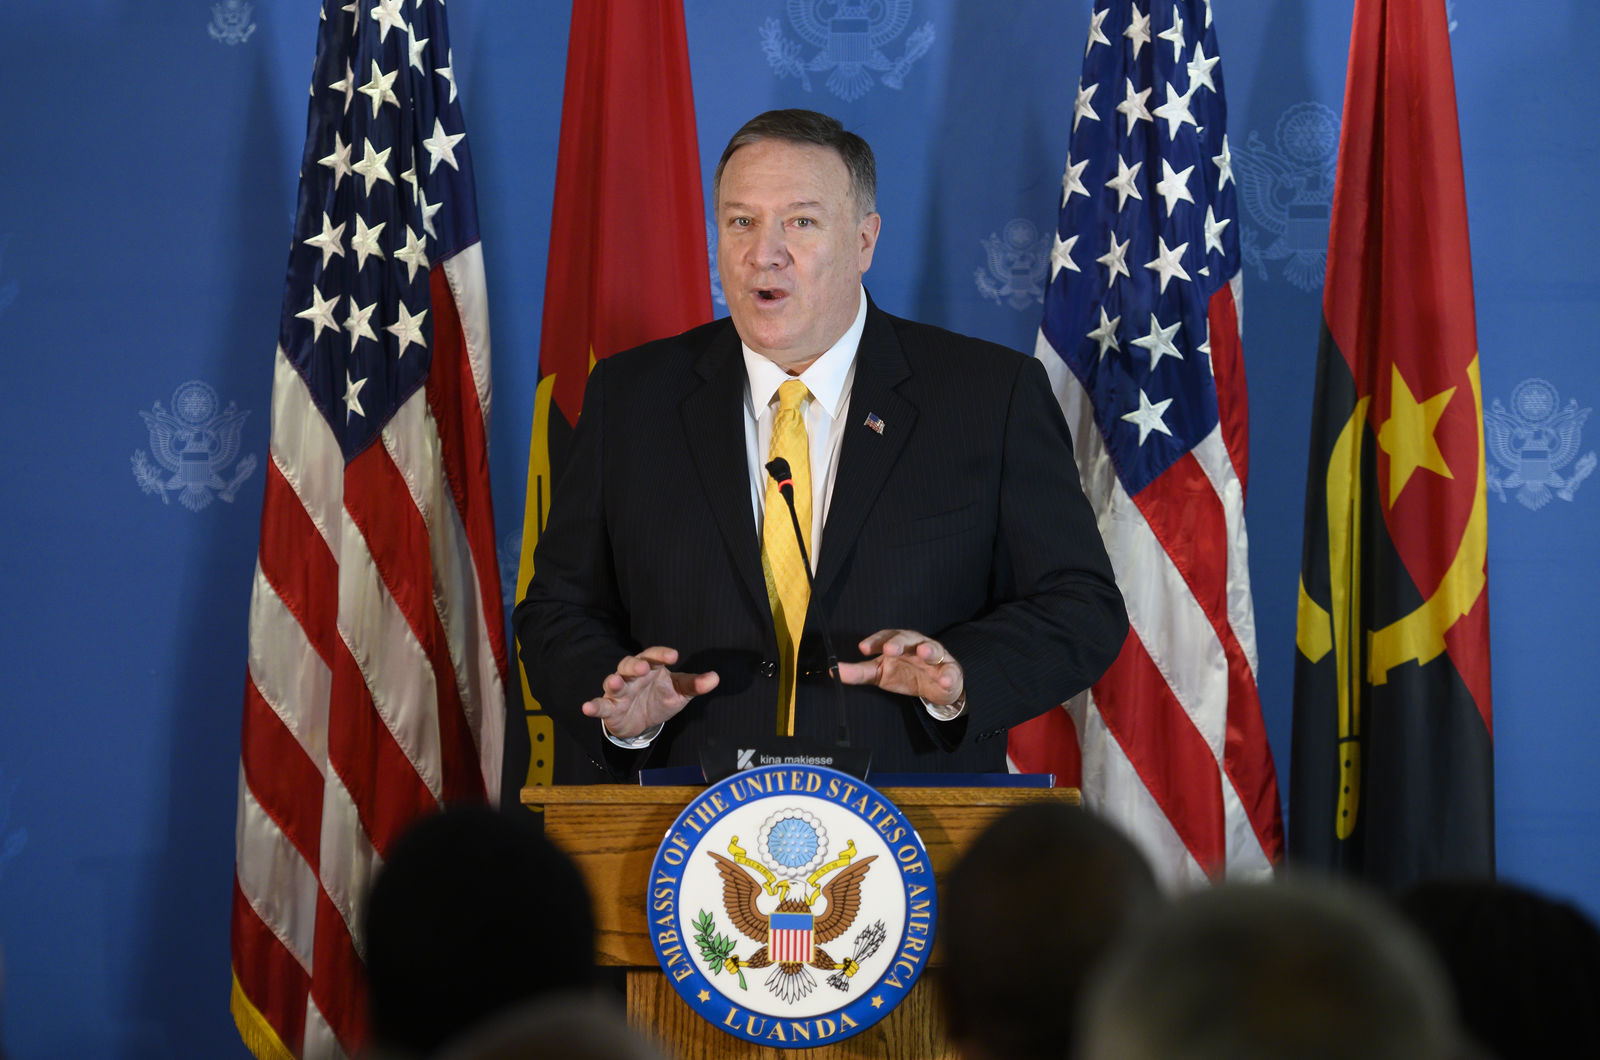 US Secretary of State Mike Pompeo speaks at a business leaders reception at the Museu de Moeda in Luanda, Angola, Monday Feb. 17, 2020. (Andrew Caballero-Reynolds/Pool via AP)